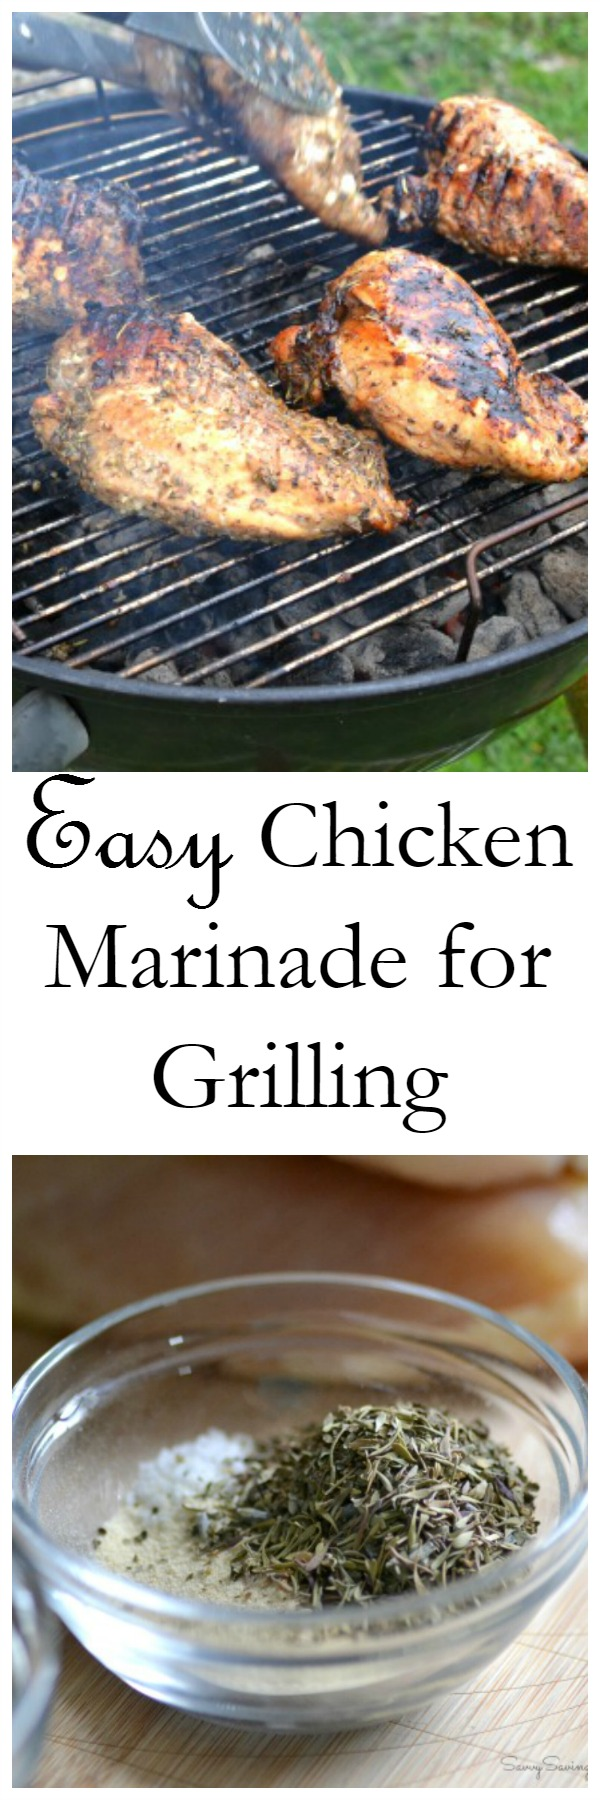 Easy-chicken-marinade-for-grilling